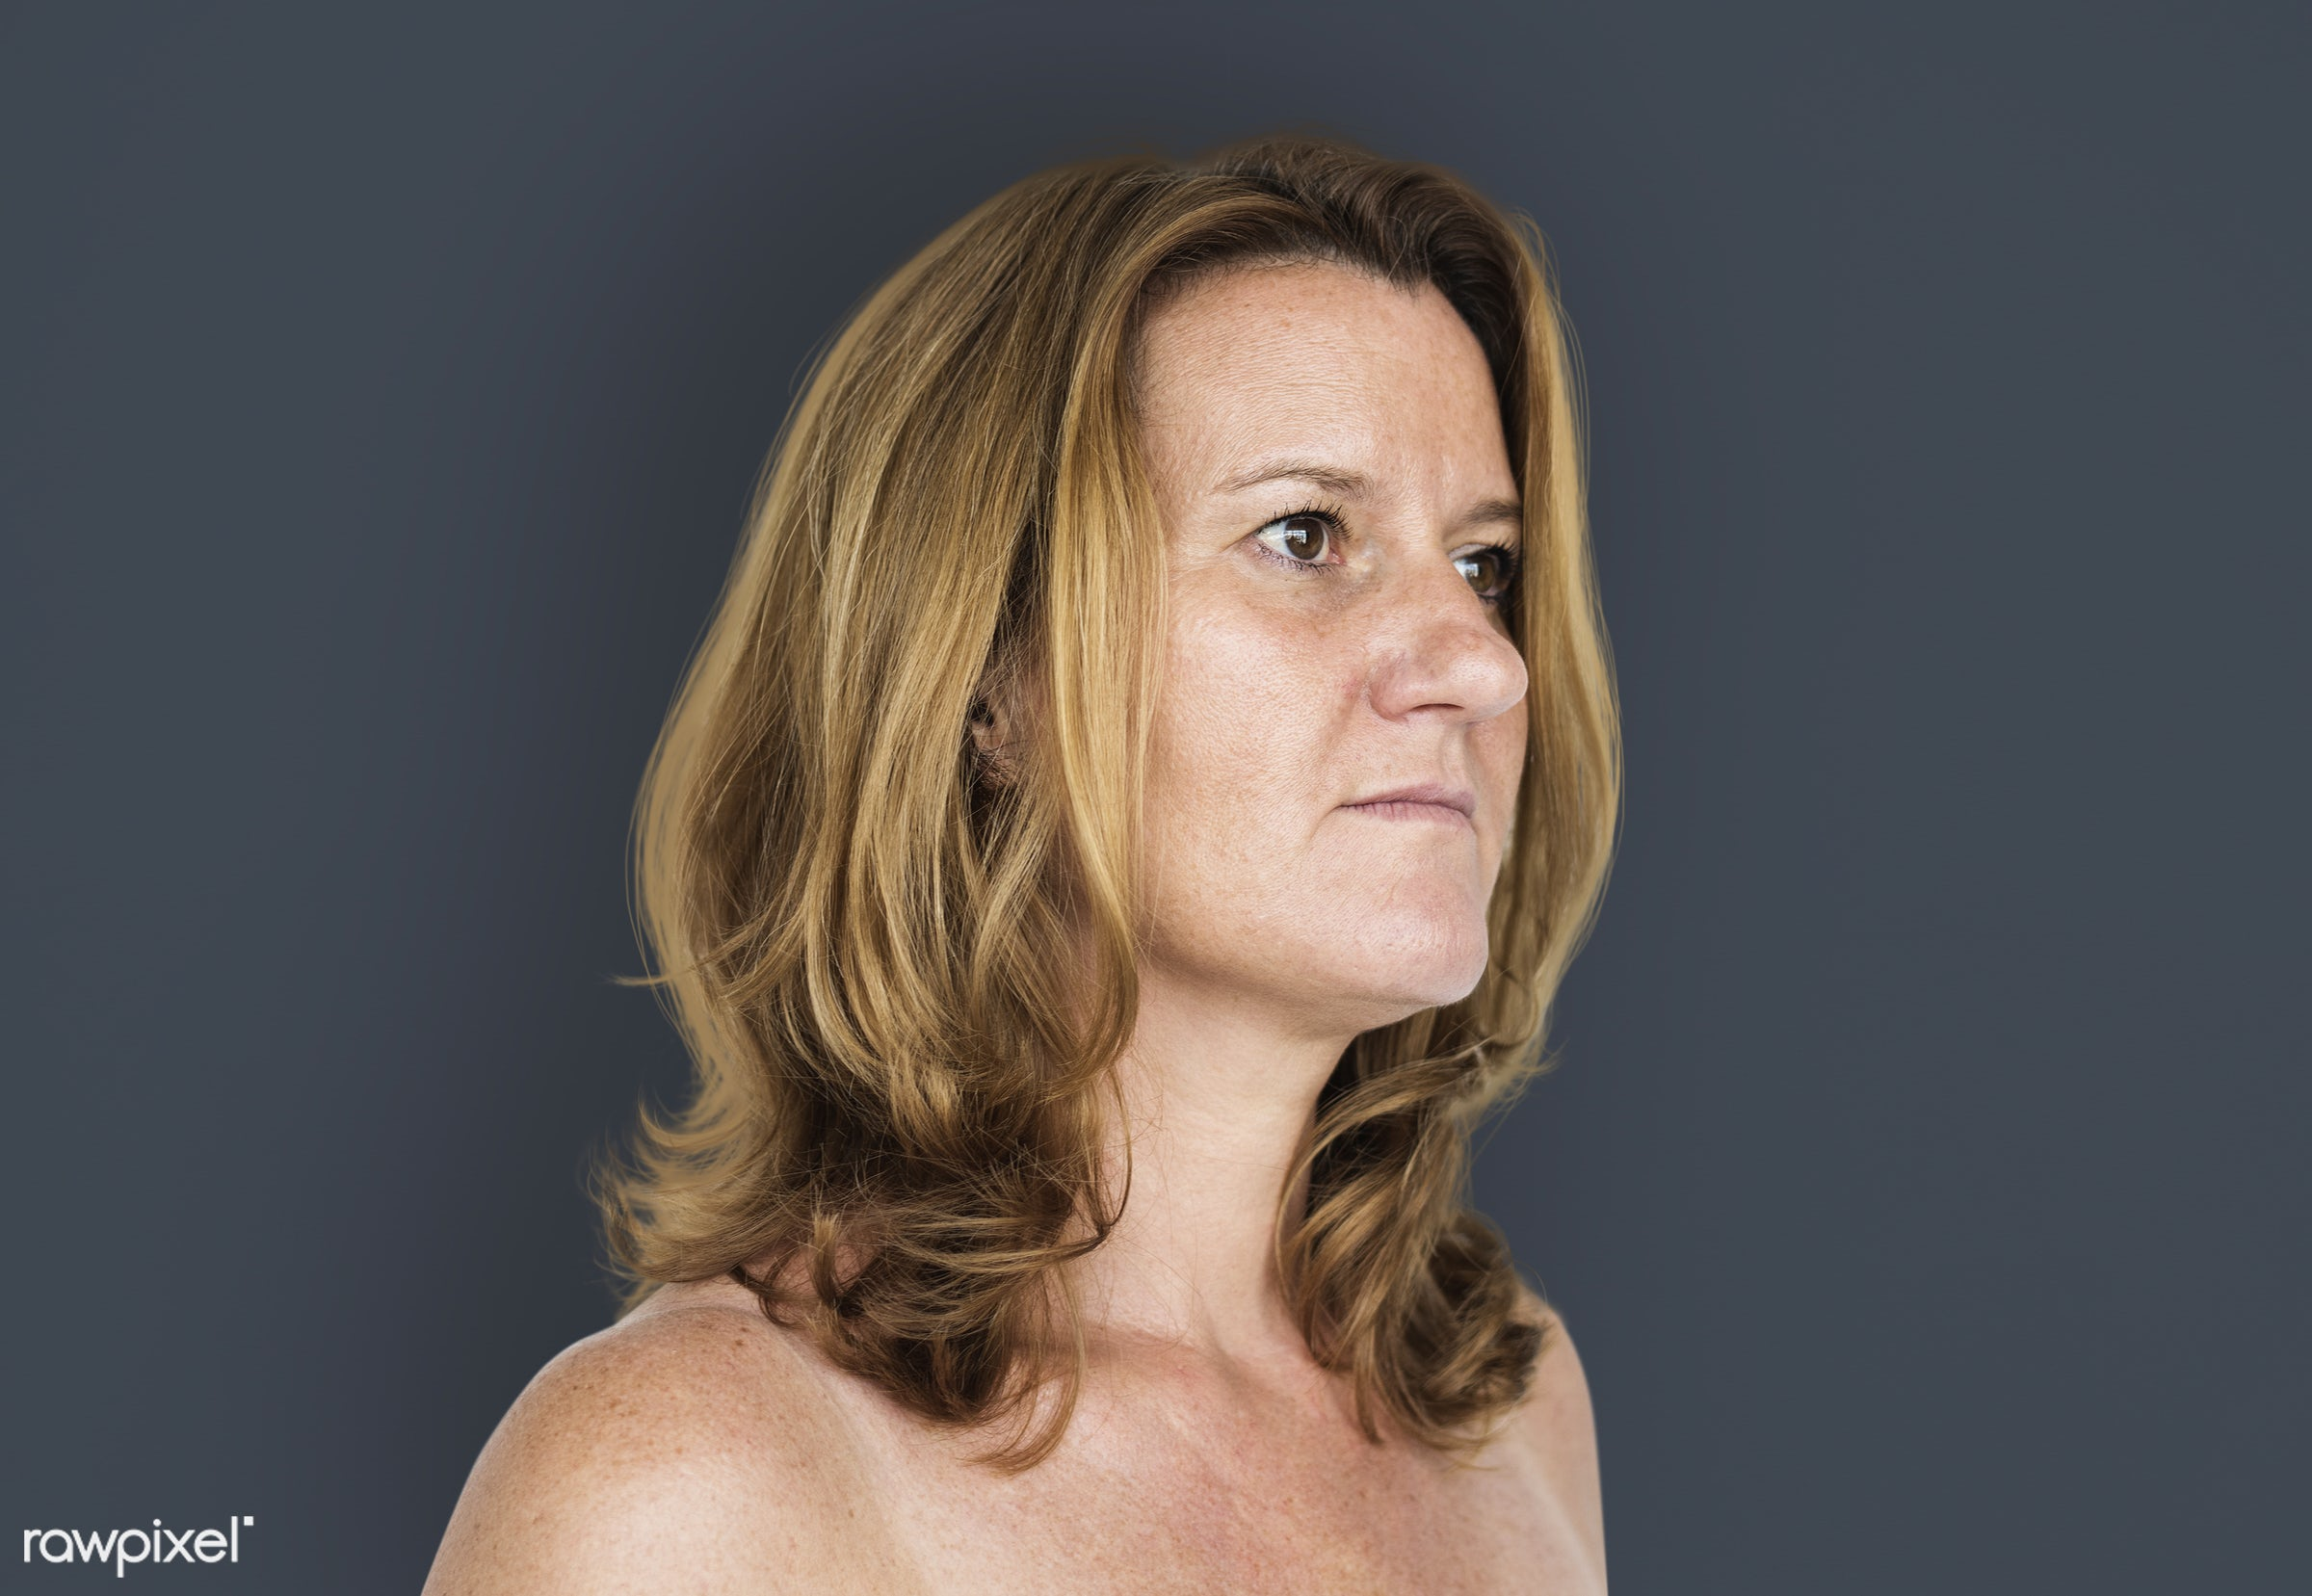 expression, studio, person, sad, people, caucasian, girl, solo, woman, bare chested, unhappy, isolated, mood, white, candid...